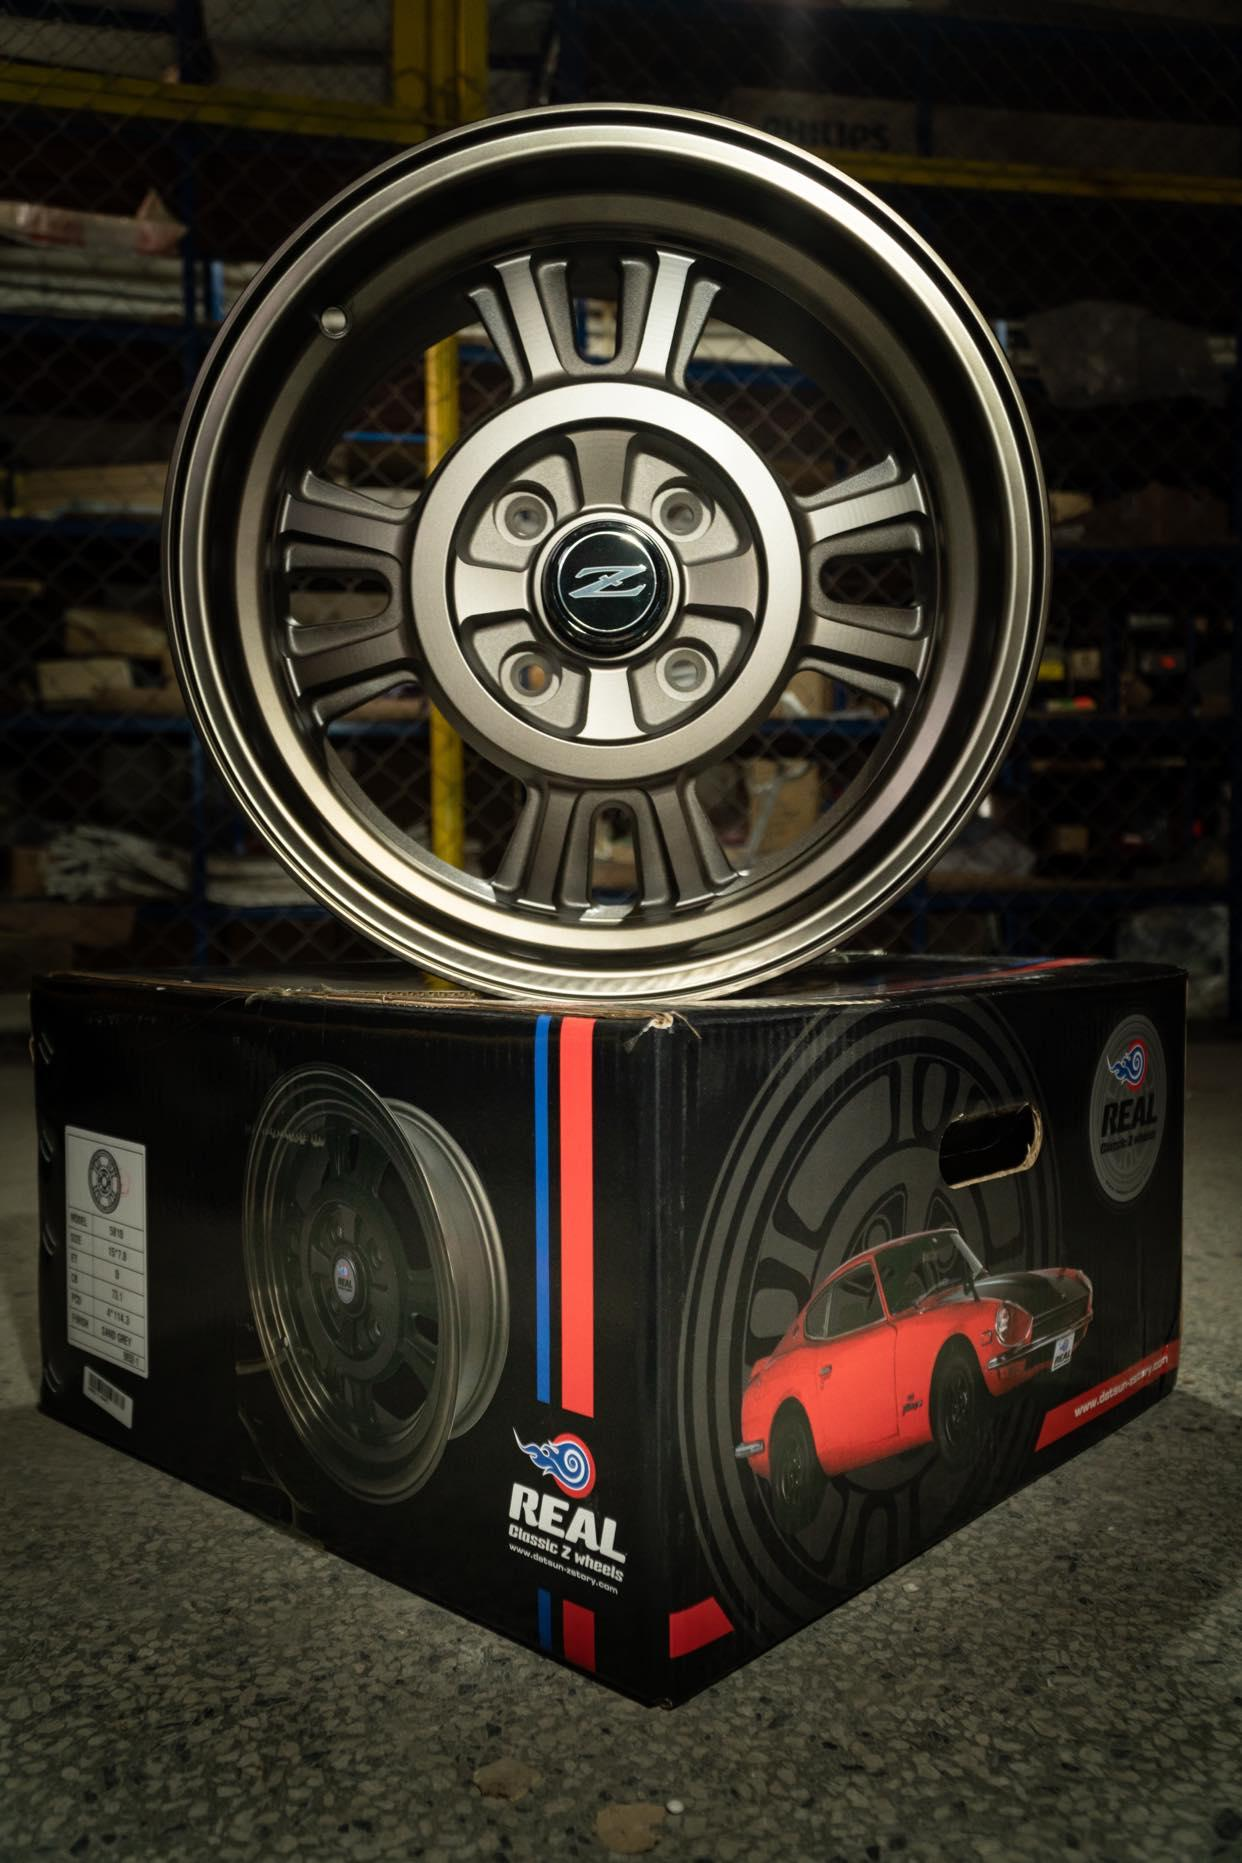 15x7 ET0 'in the style of' KS competition/works rally-mag wheels